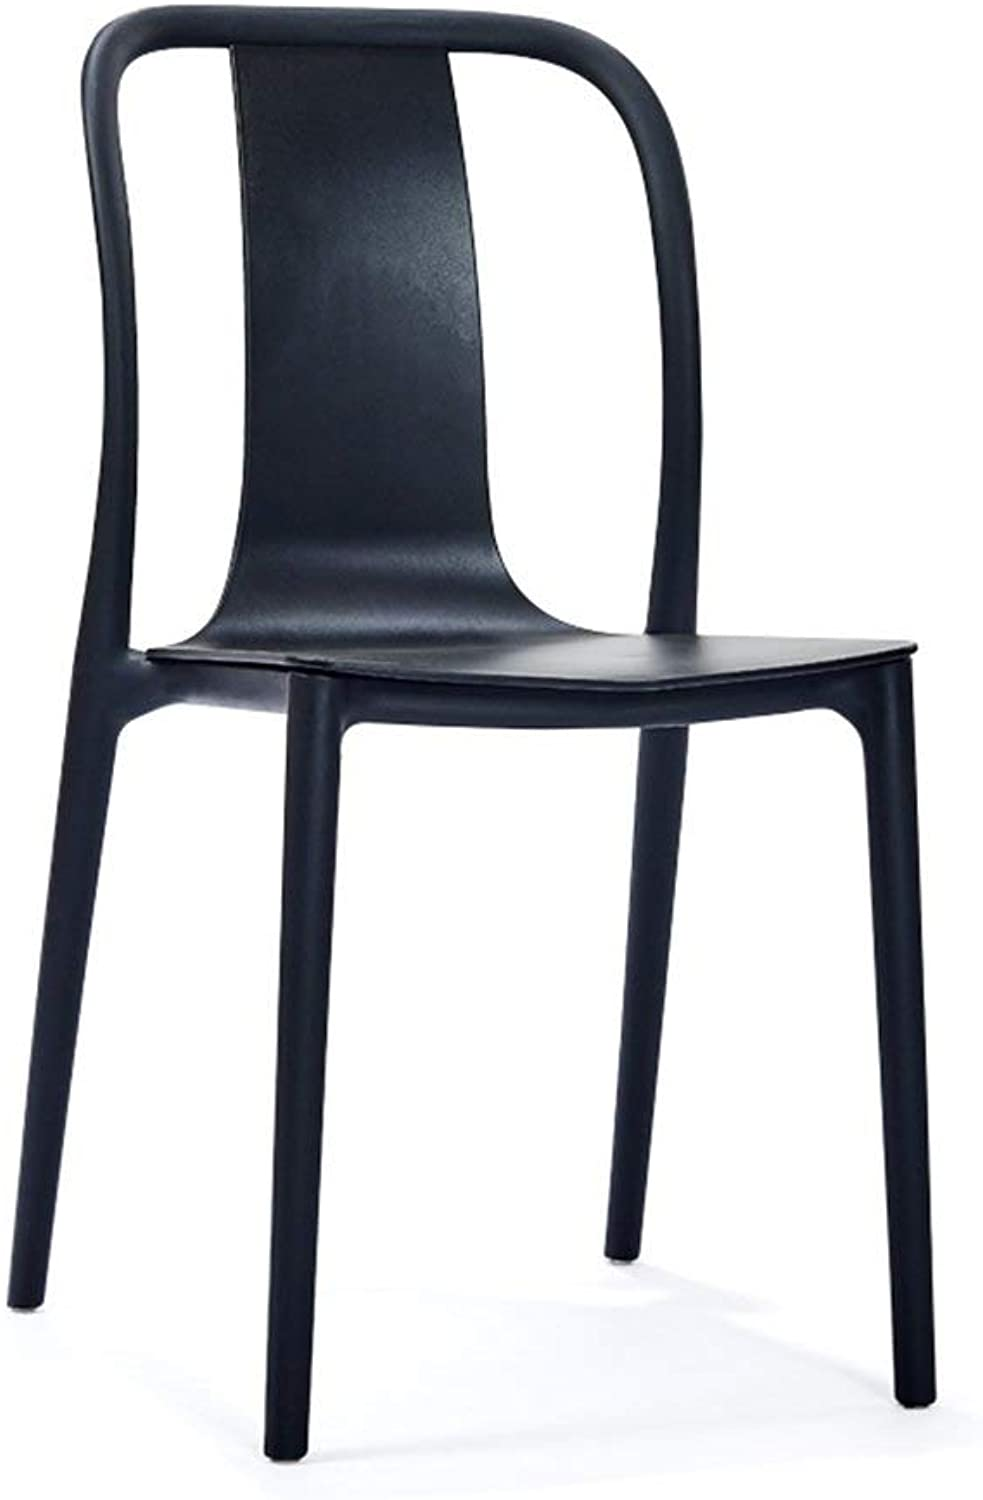 MMAXZ European Creative Dining Chair Home backrest Plastic Chair American Casual Dining Chair can be superimposed Extension Stool high Stool (color   Black)